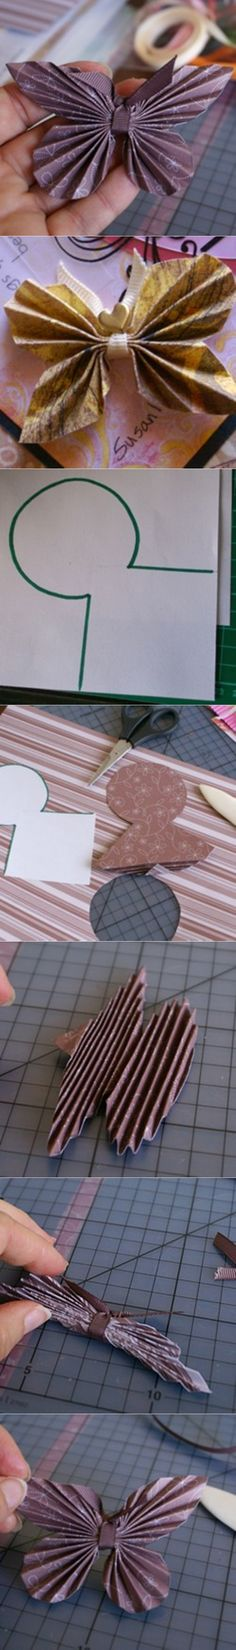 how to DIY Paper Butterfly with Paper Scrap | www.FabArtDIY.com